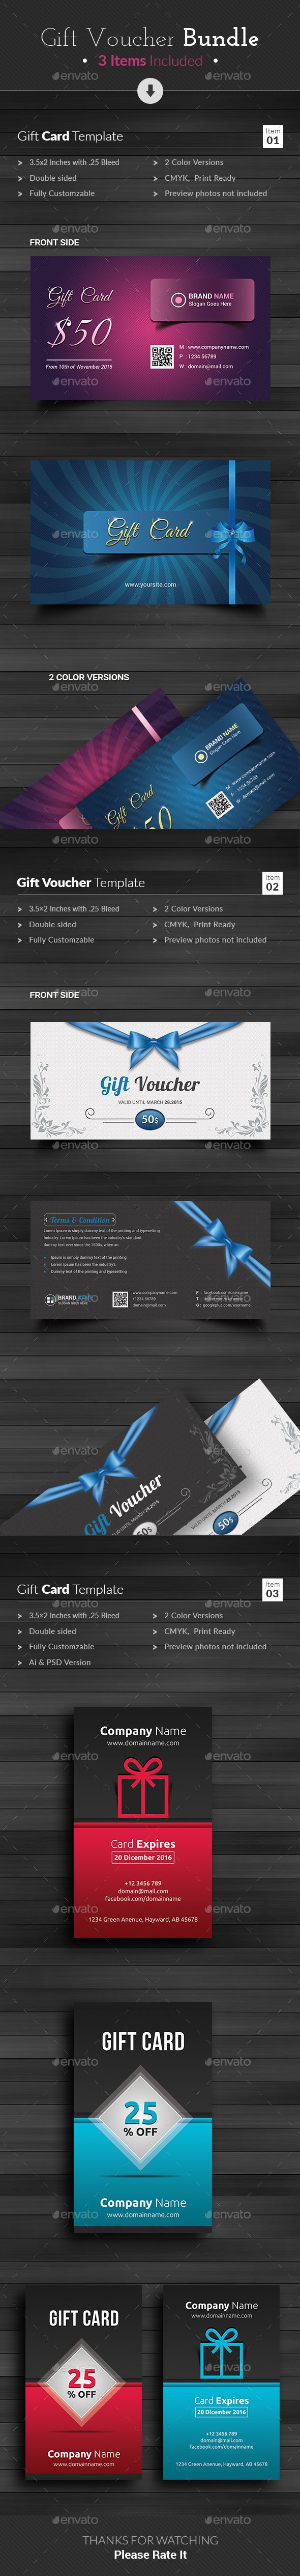 Gift Voucher - Loyalty Cards Cards & Invites Download https://graphicriver.net/item/gift-voucher/19241354?ref=themedevisers